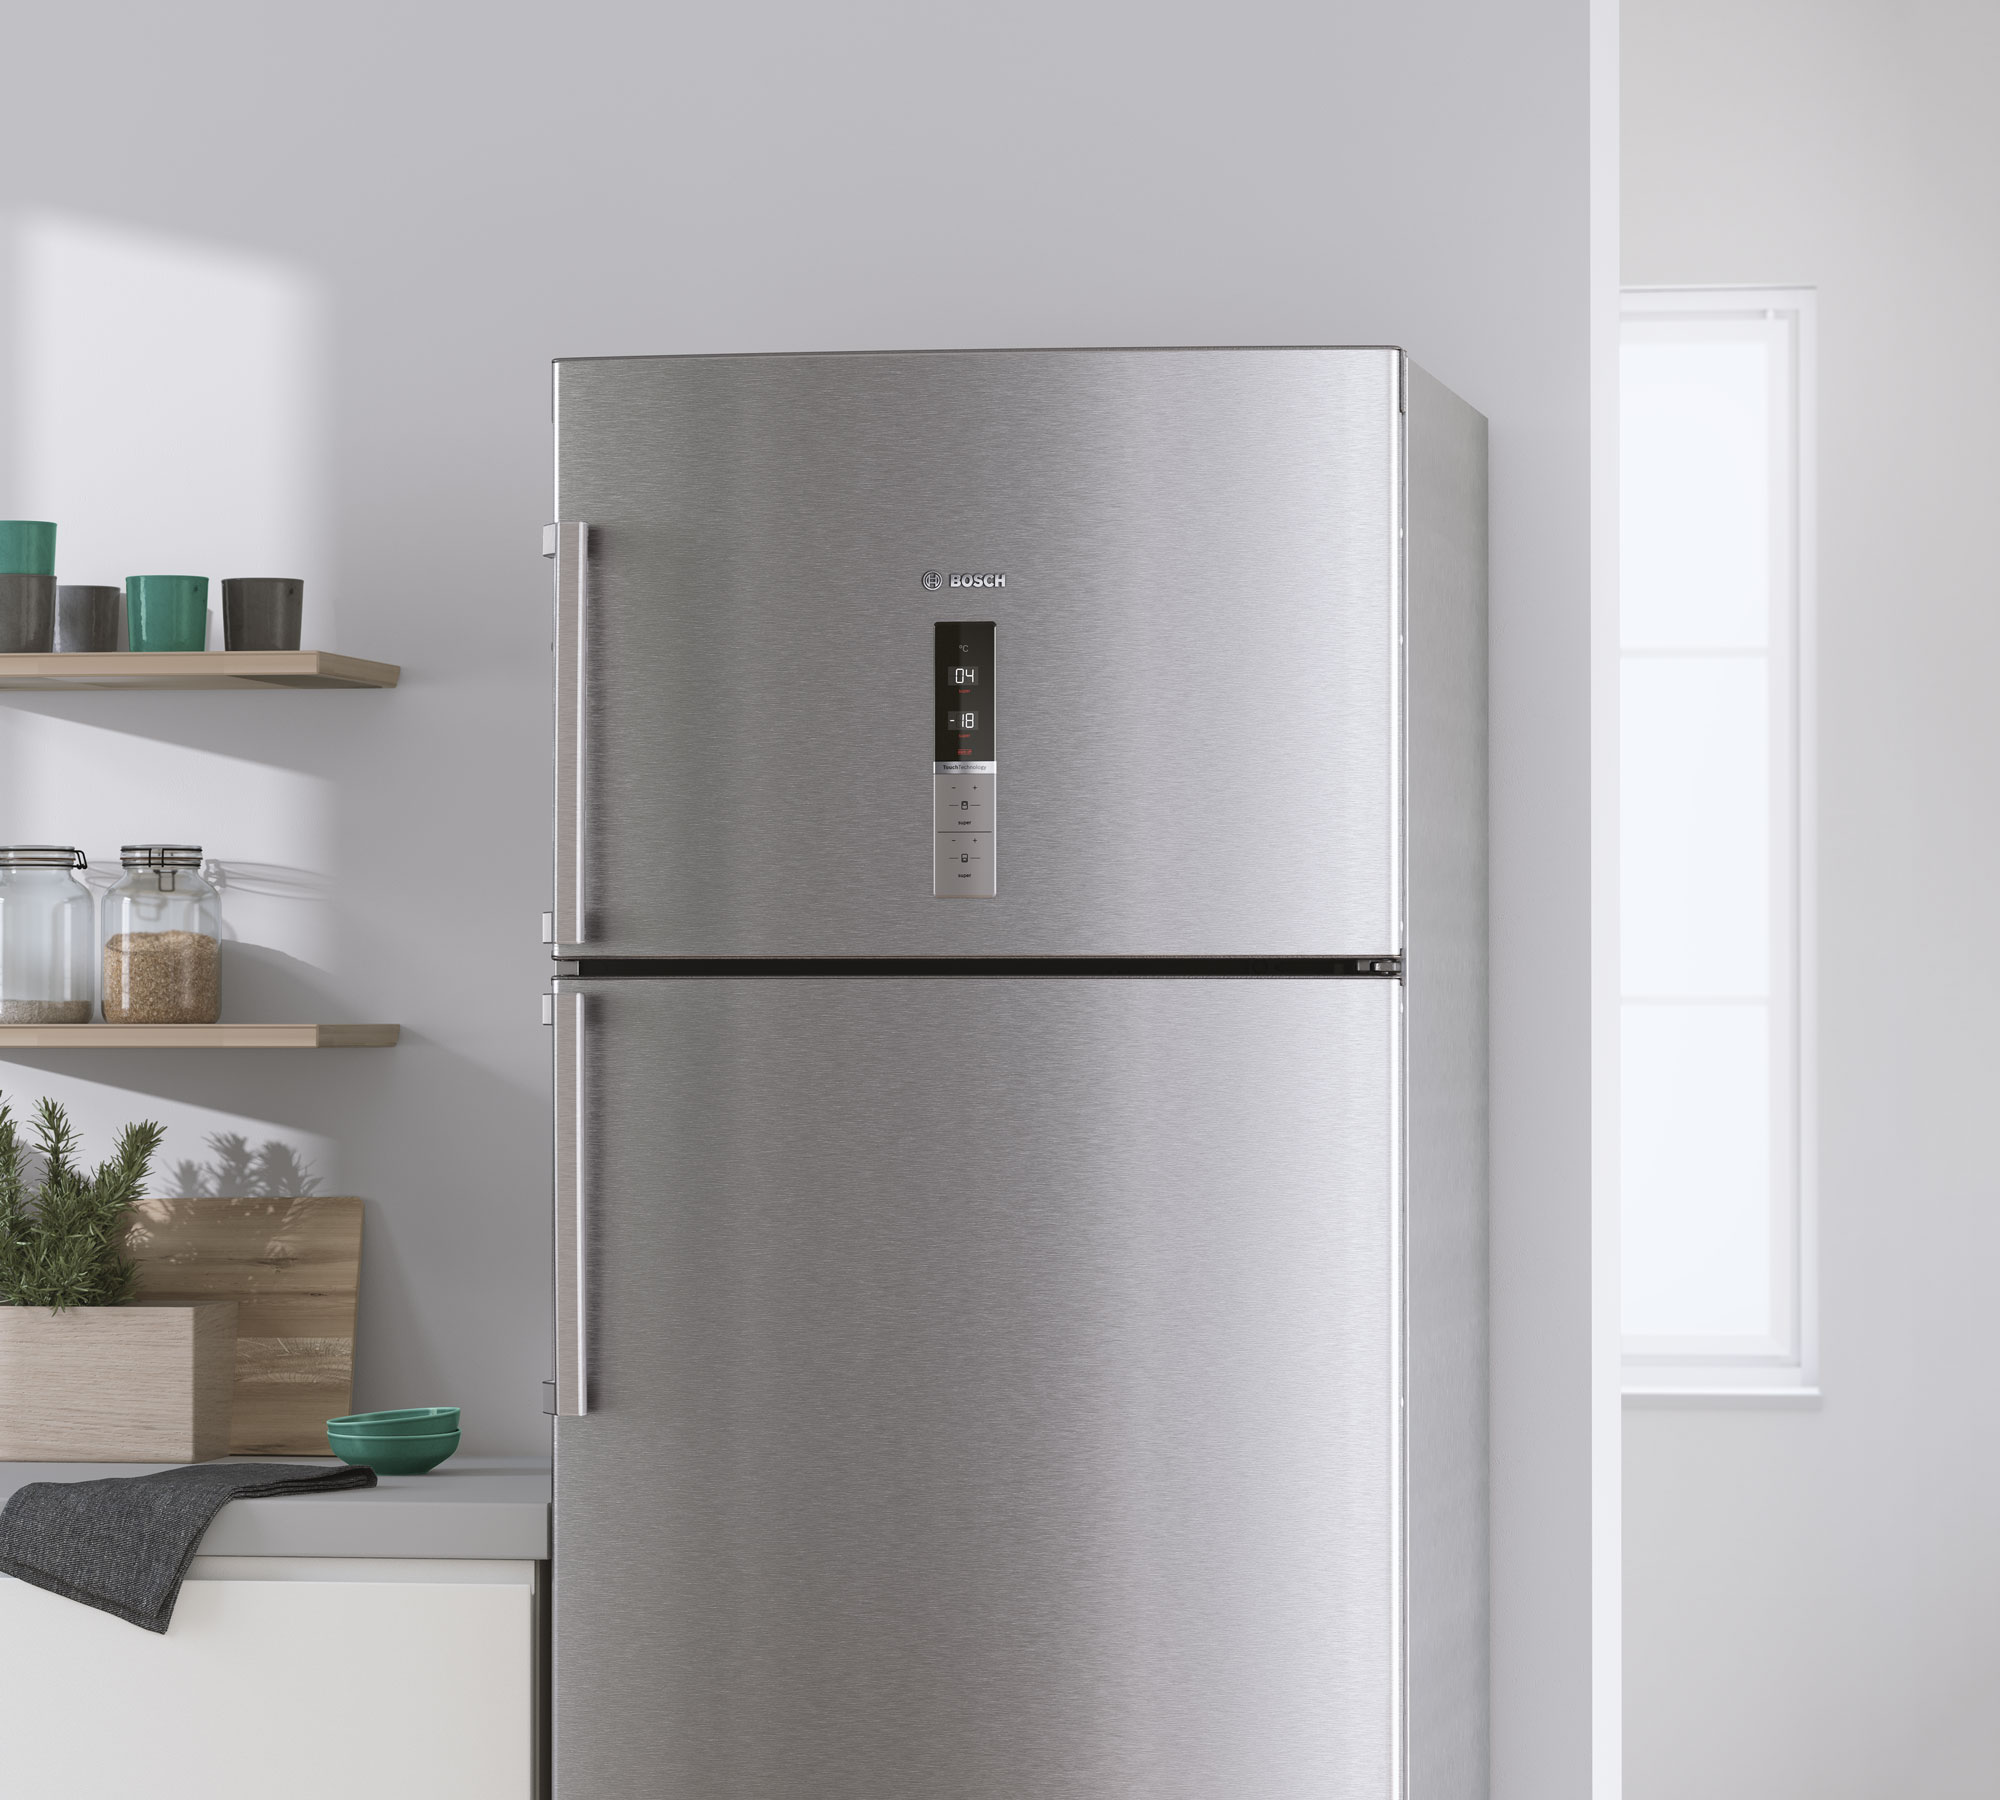 CGI - Bosch - Home Appliances - Fridge-freezers - Close up